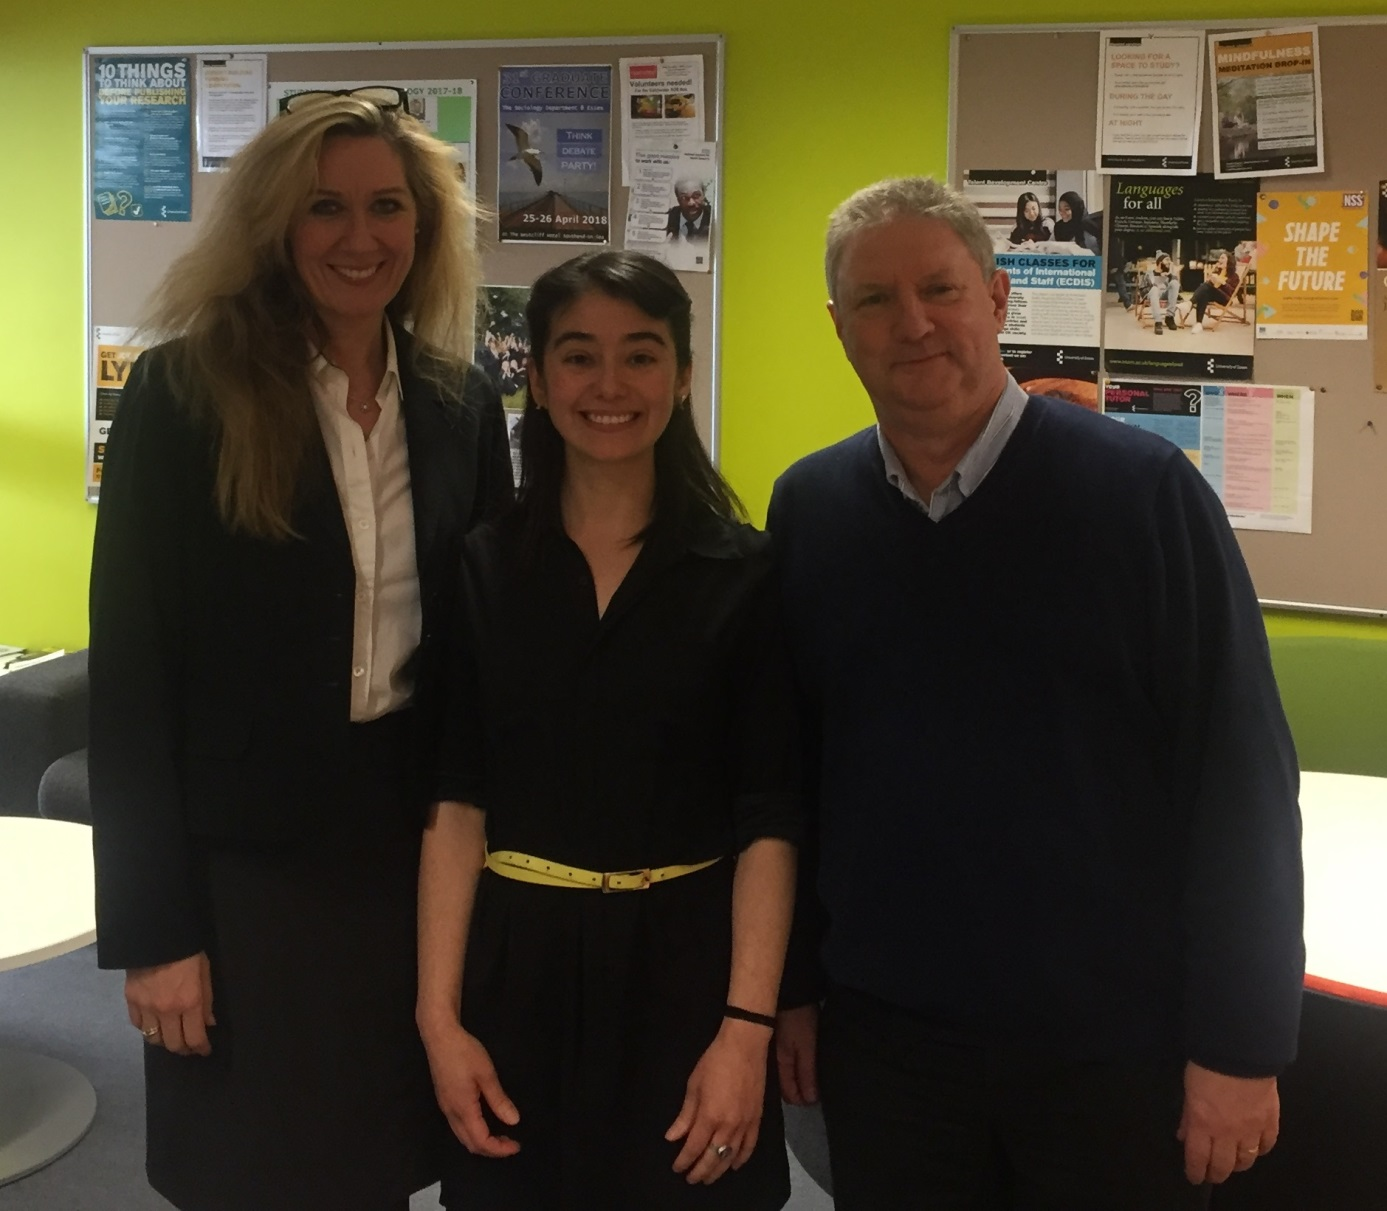 External examiner and INIRC-CBOW network founder Professor Ingvill C. Mochmann, PhD candidate Tatiana Sanchez Parra, internal examiner Professor Nigel G. South, University of Essex